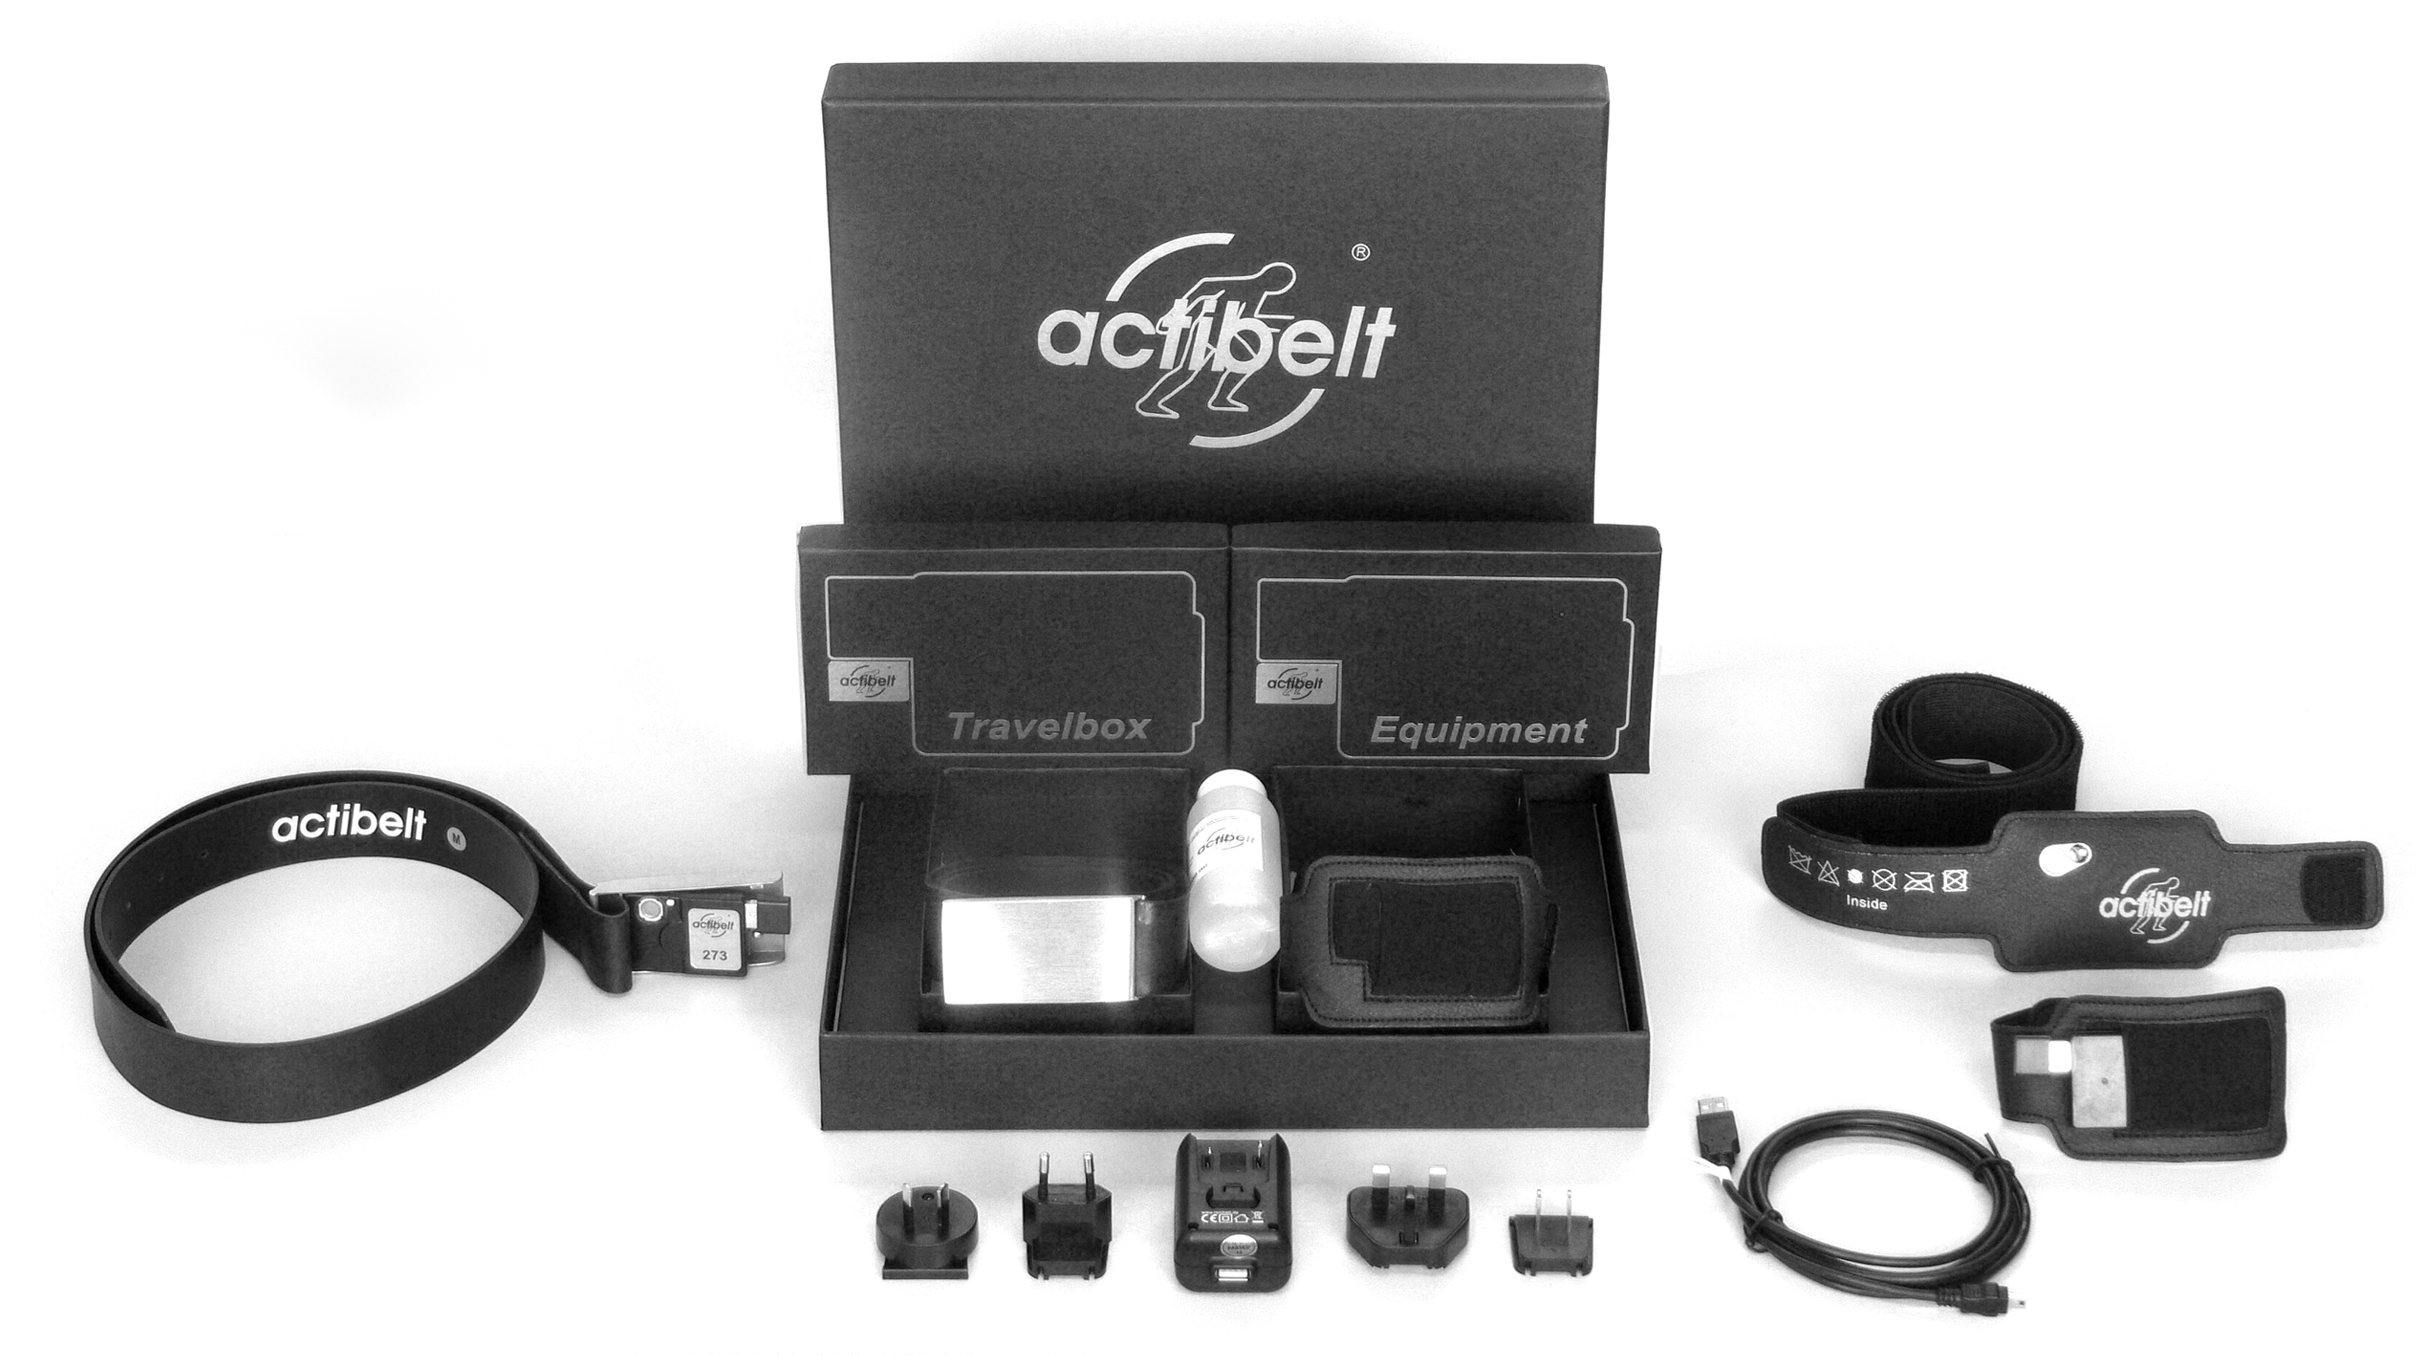 actibelt®devices were used in the study.actibelt®is a registered trademark of Trium Analysis Online GmbH.  http://www.actibelt.com